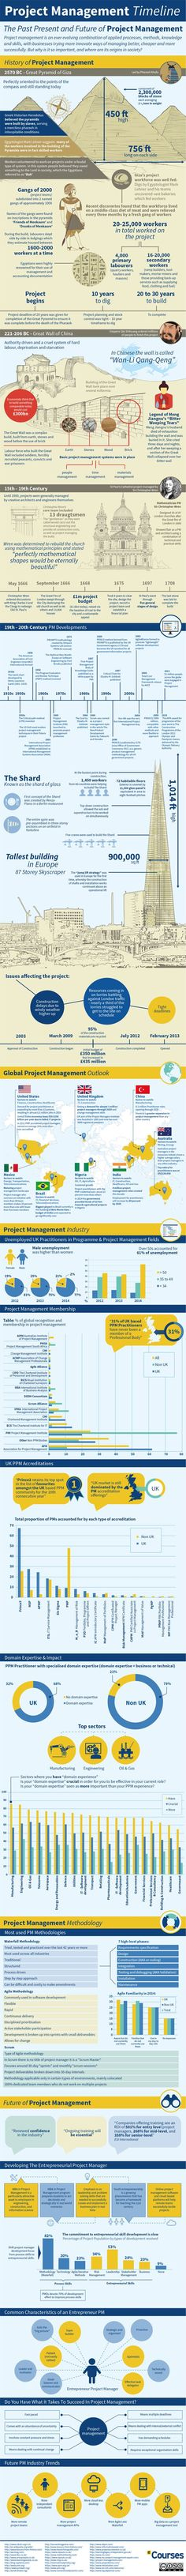 Infographic: Project Management Timeline - Past, Present and Future | Virtual Project Management Consulting